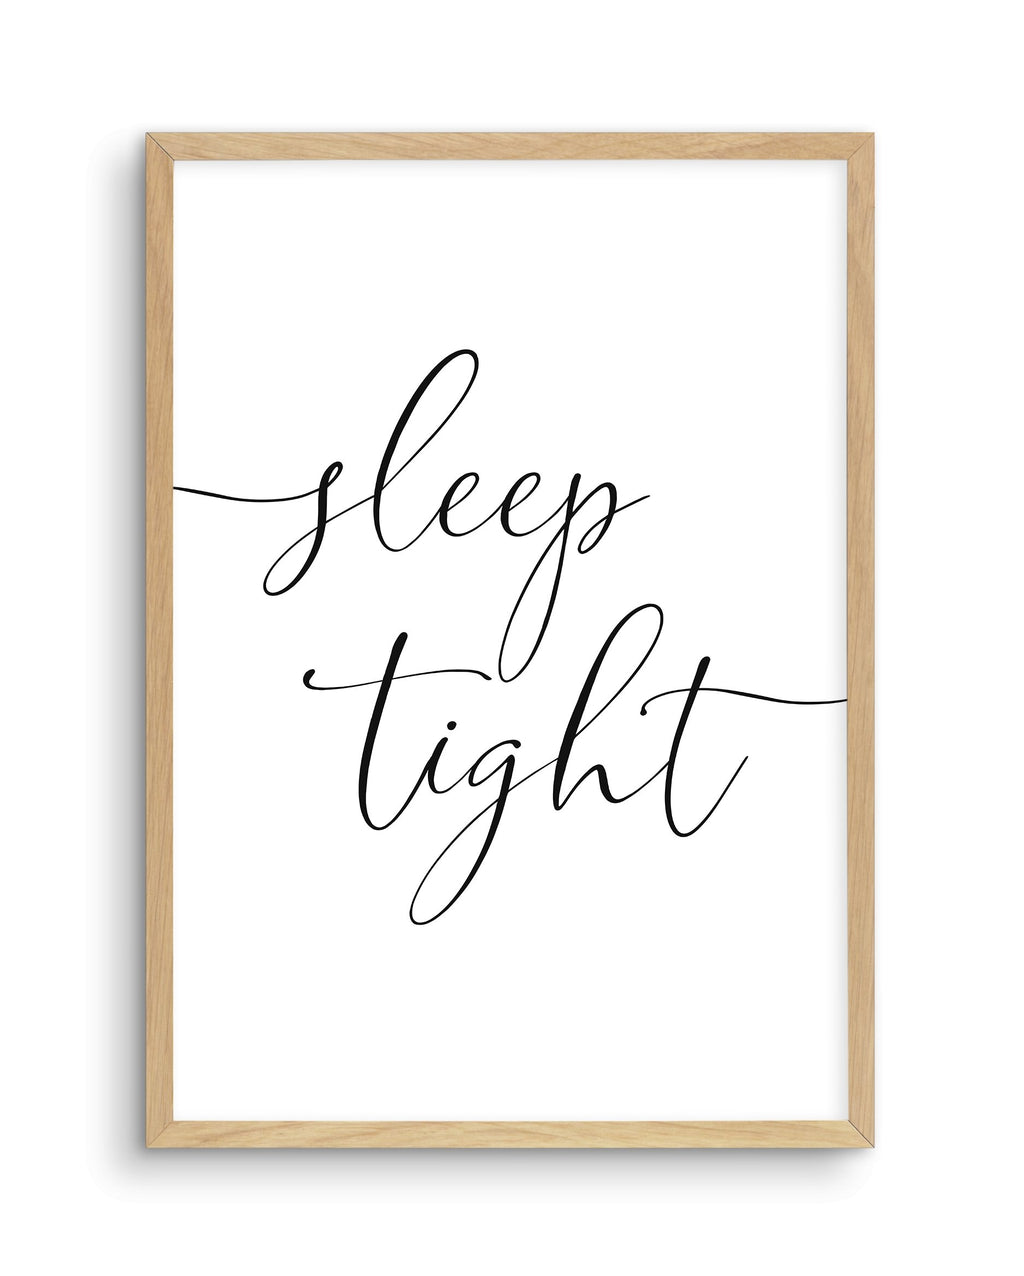 Sleep Tight - Olive et Oriel | Shop Art Prints & Posters Online